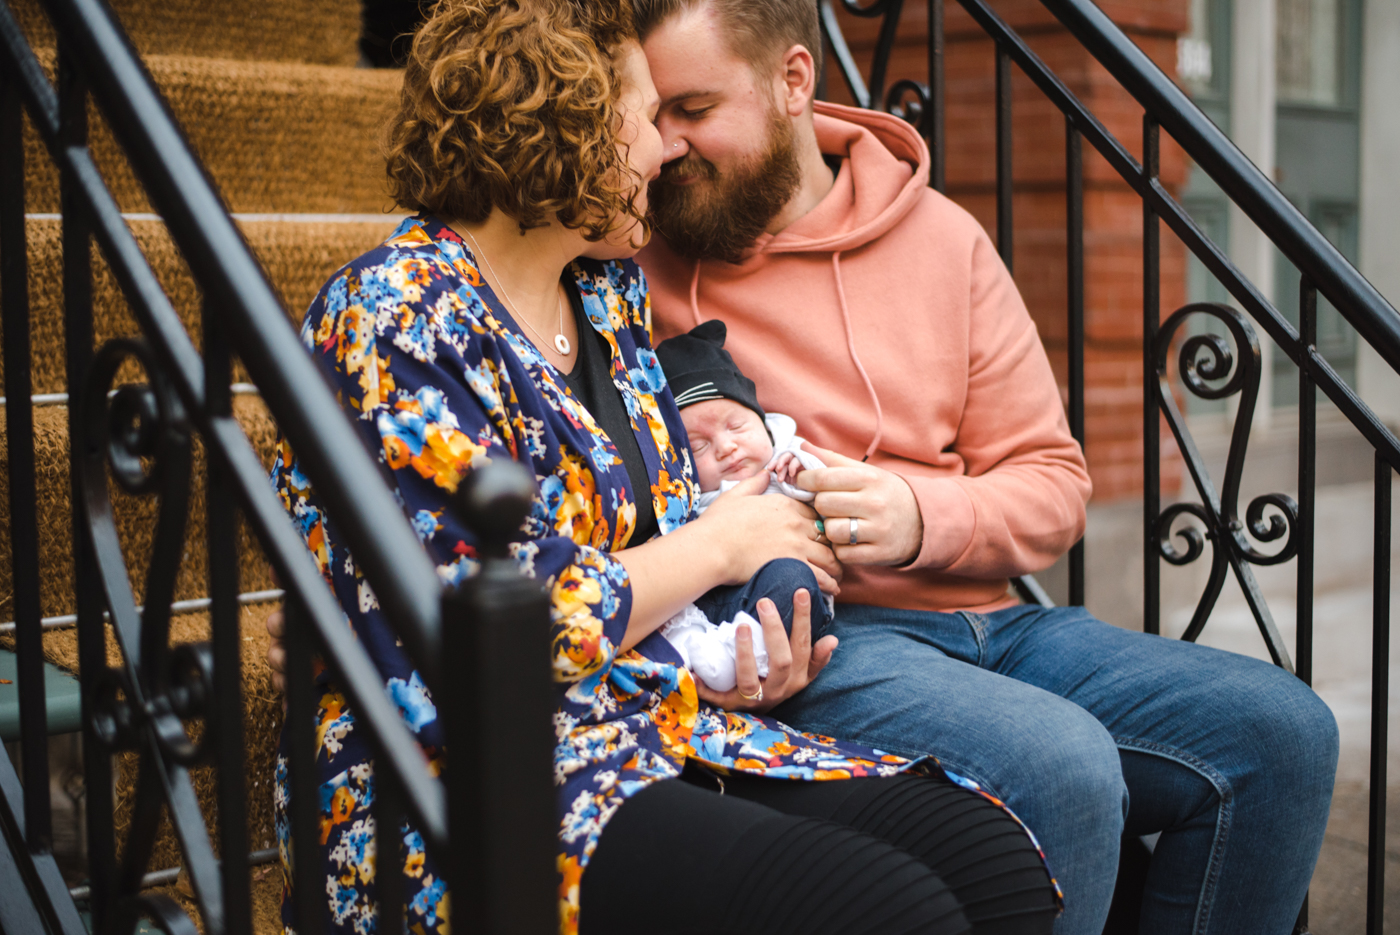 The Stipancic Family At Home Newborn Session Baby 1 Month Old Montreal Quebec Hamilton Ontario Aidan Hennebry Hush Hush Photography & Film Adelaide Pearle-31.jpg